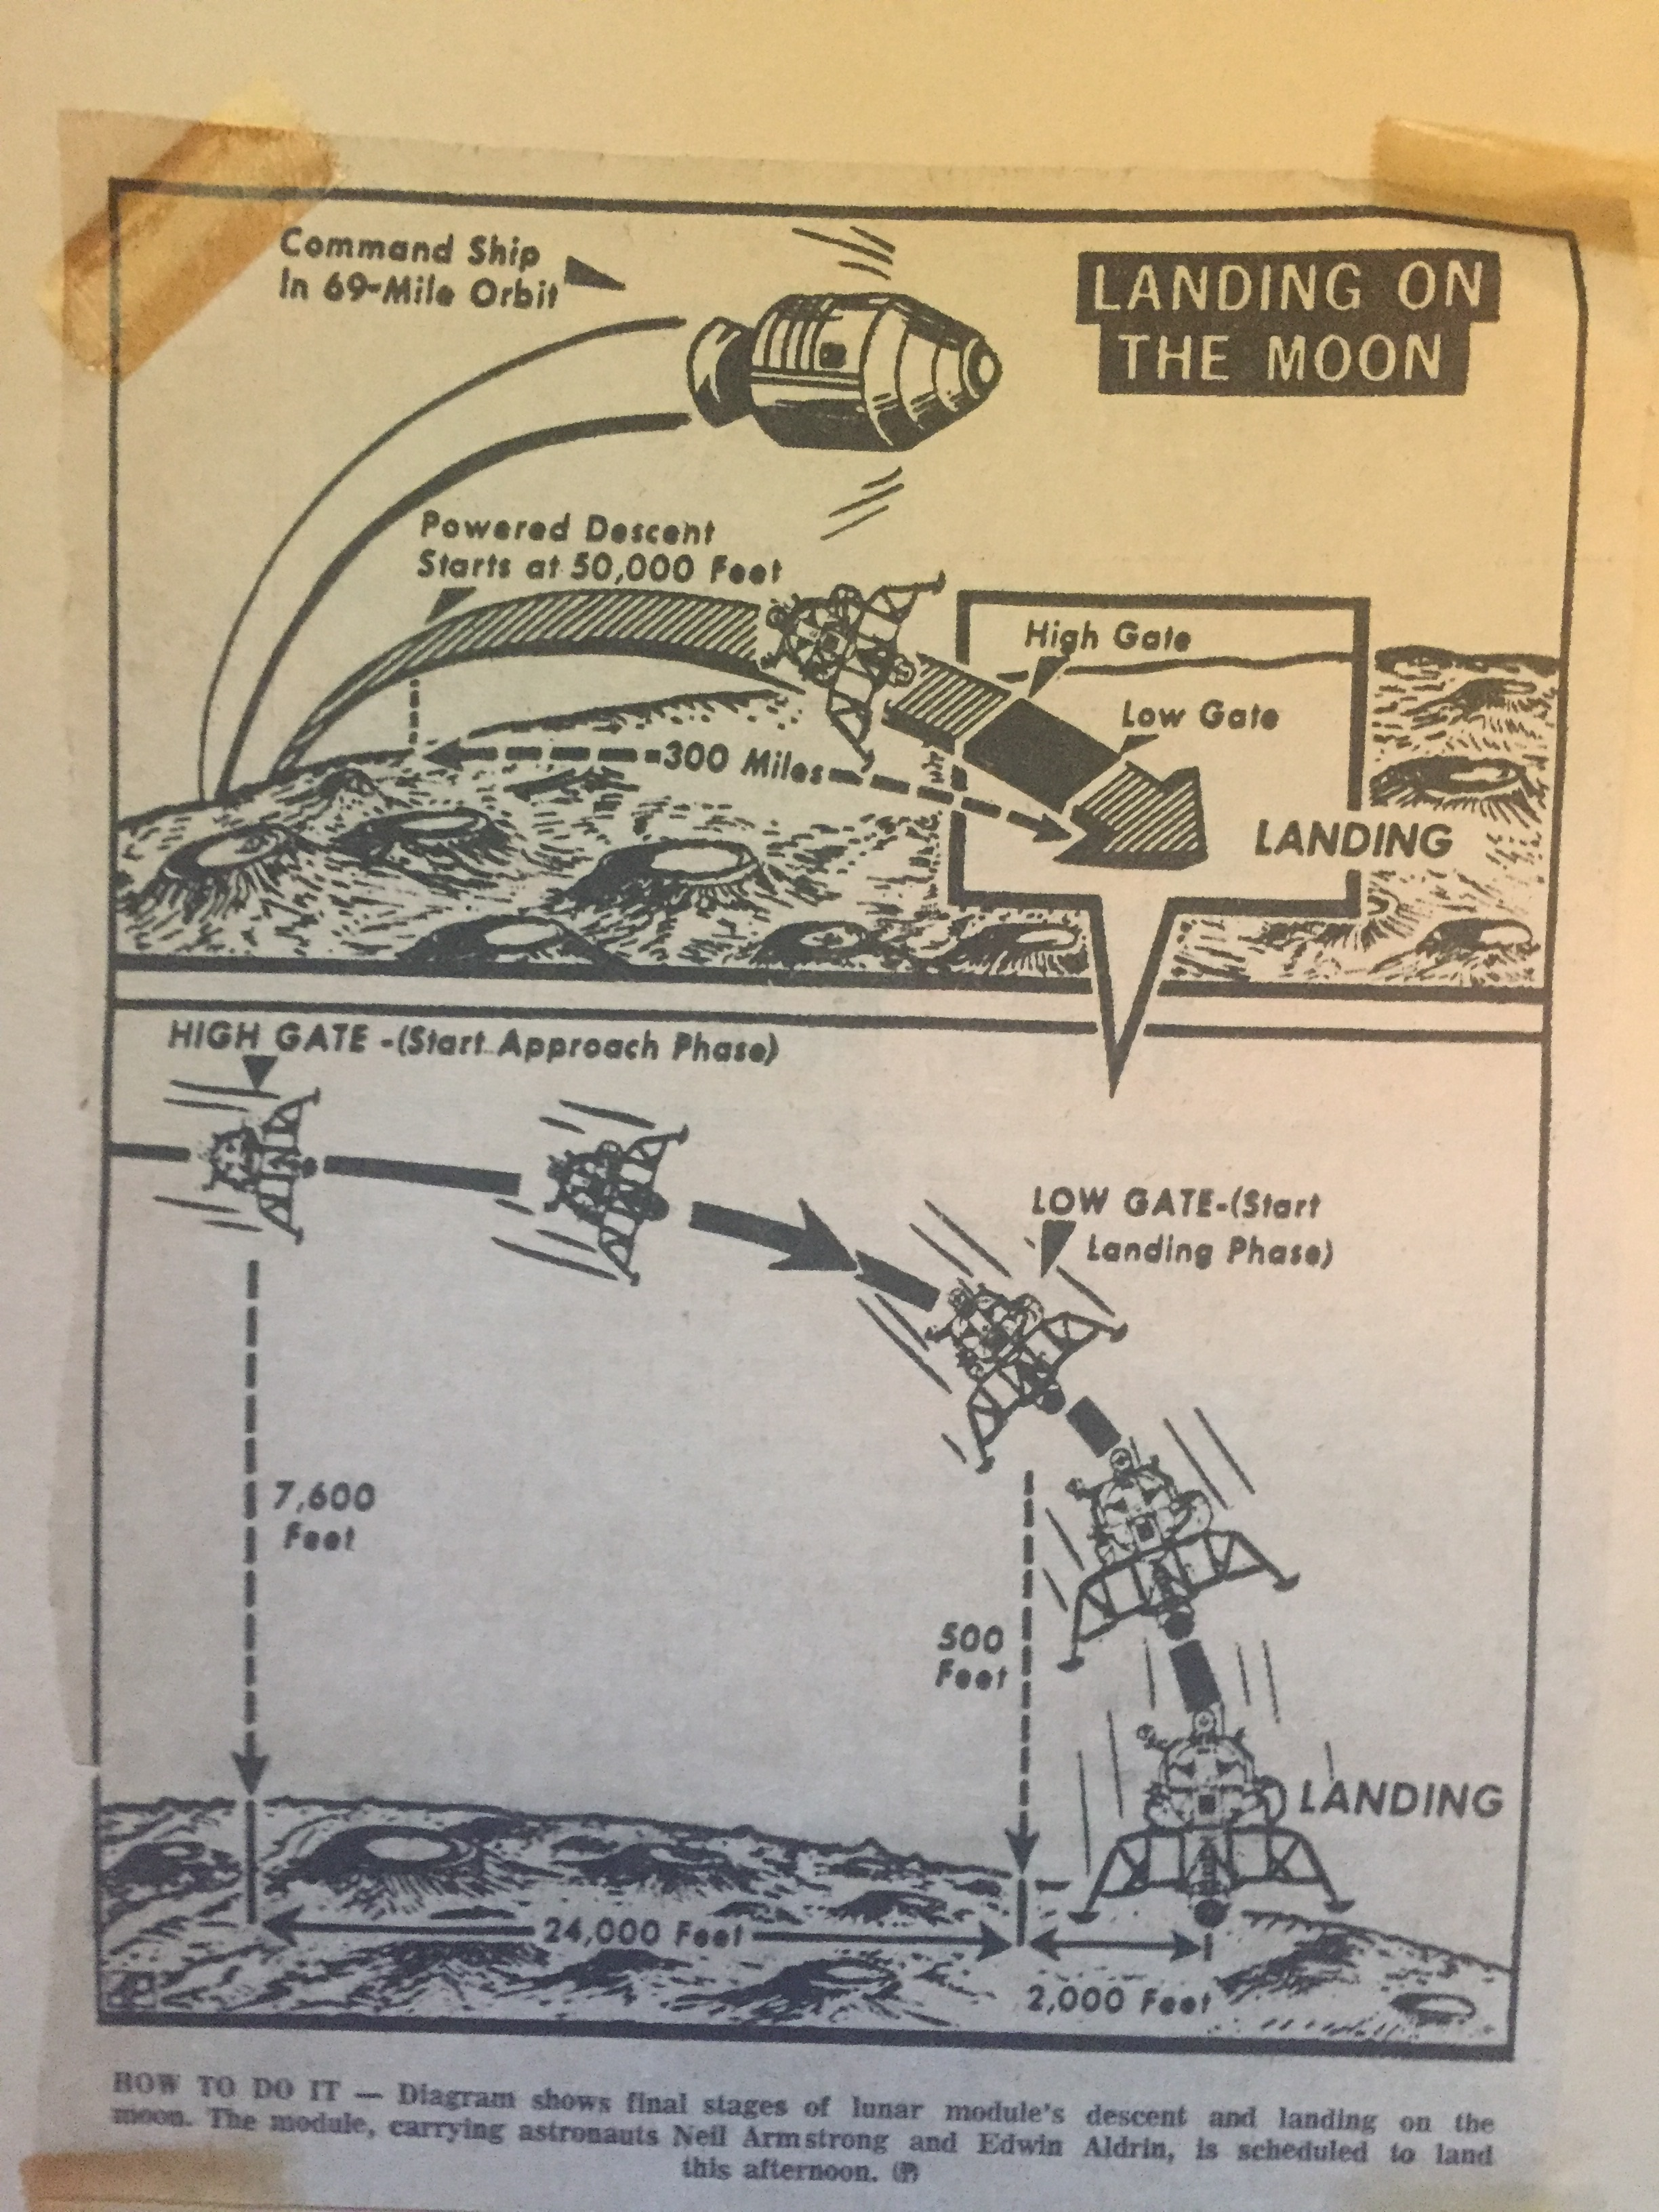 Newspaper diagrams of the Apollo 11 landing.